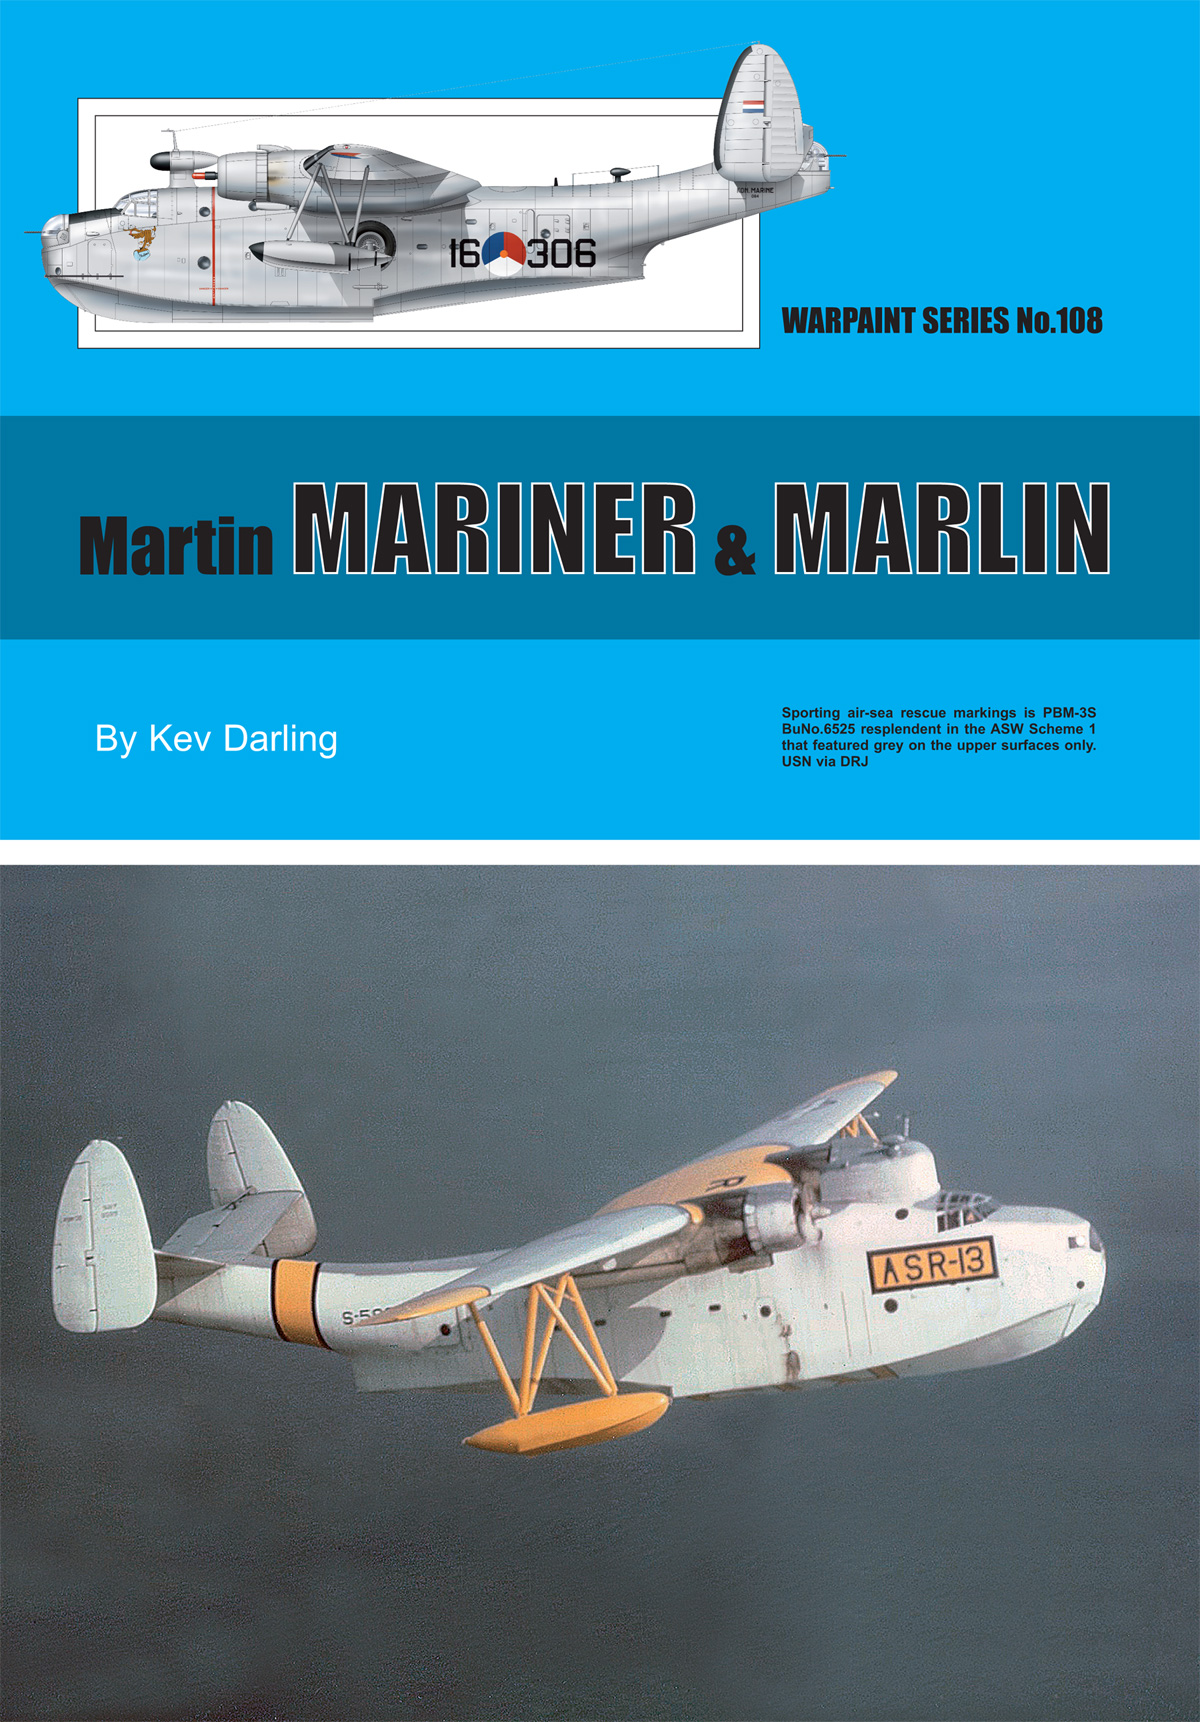 Guideline Publications No.108 Martin Mariner & Marlin No.108  in the Warpaint series